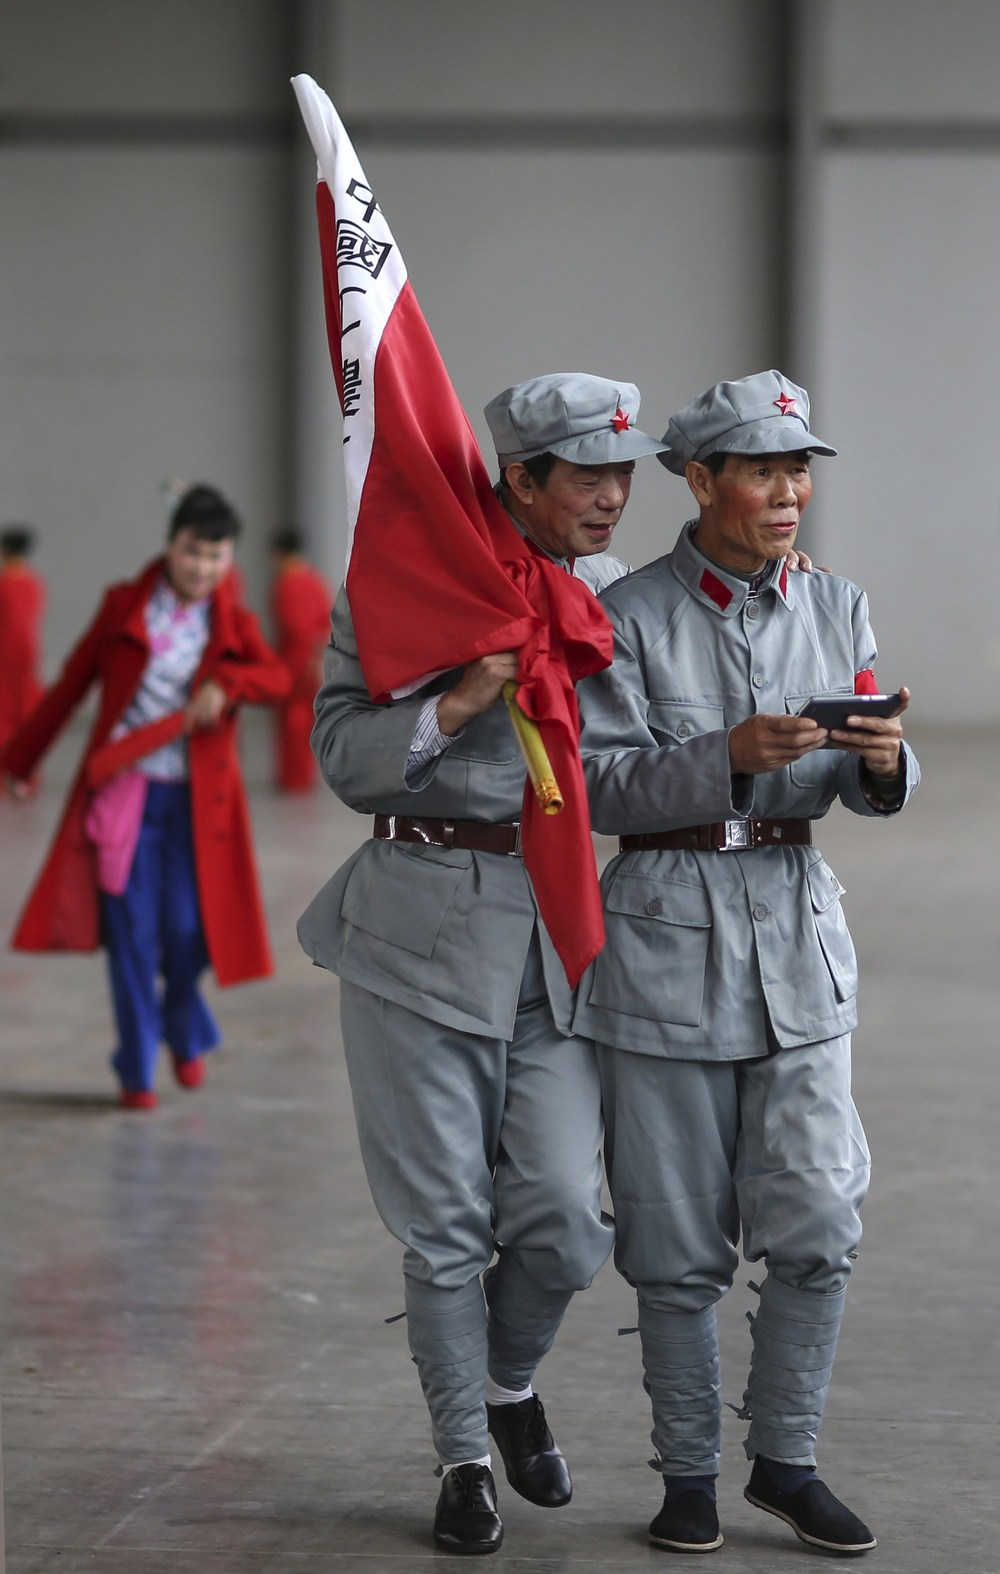 Participants dressed as Red Army soldiers look at a mobile phone as they wait backstage before their performance at a line dancing competition in Kunming